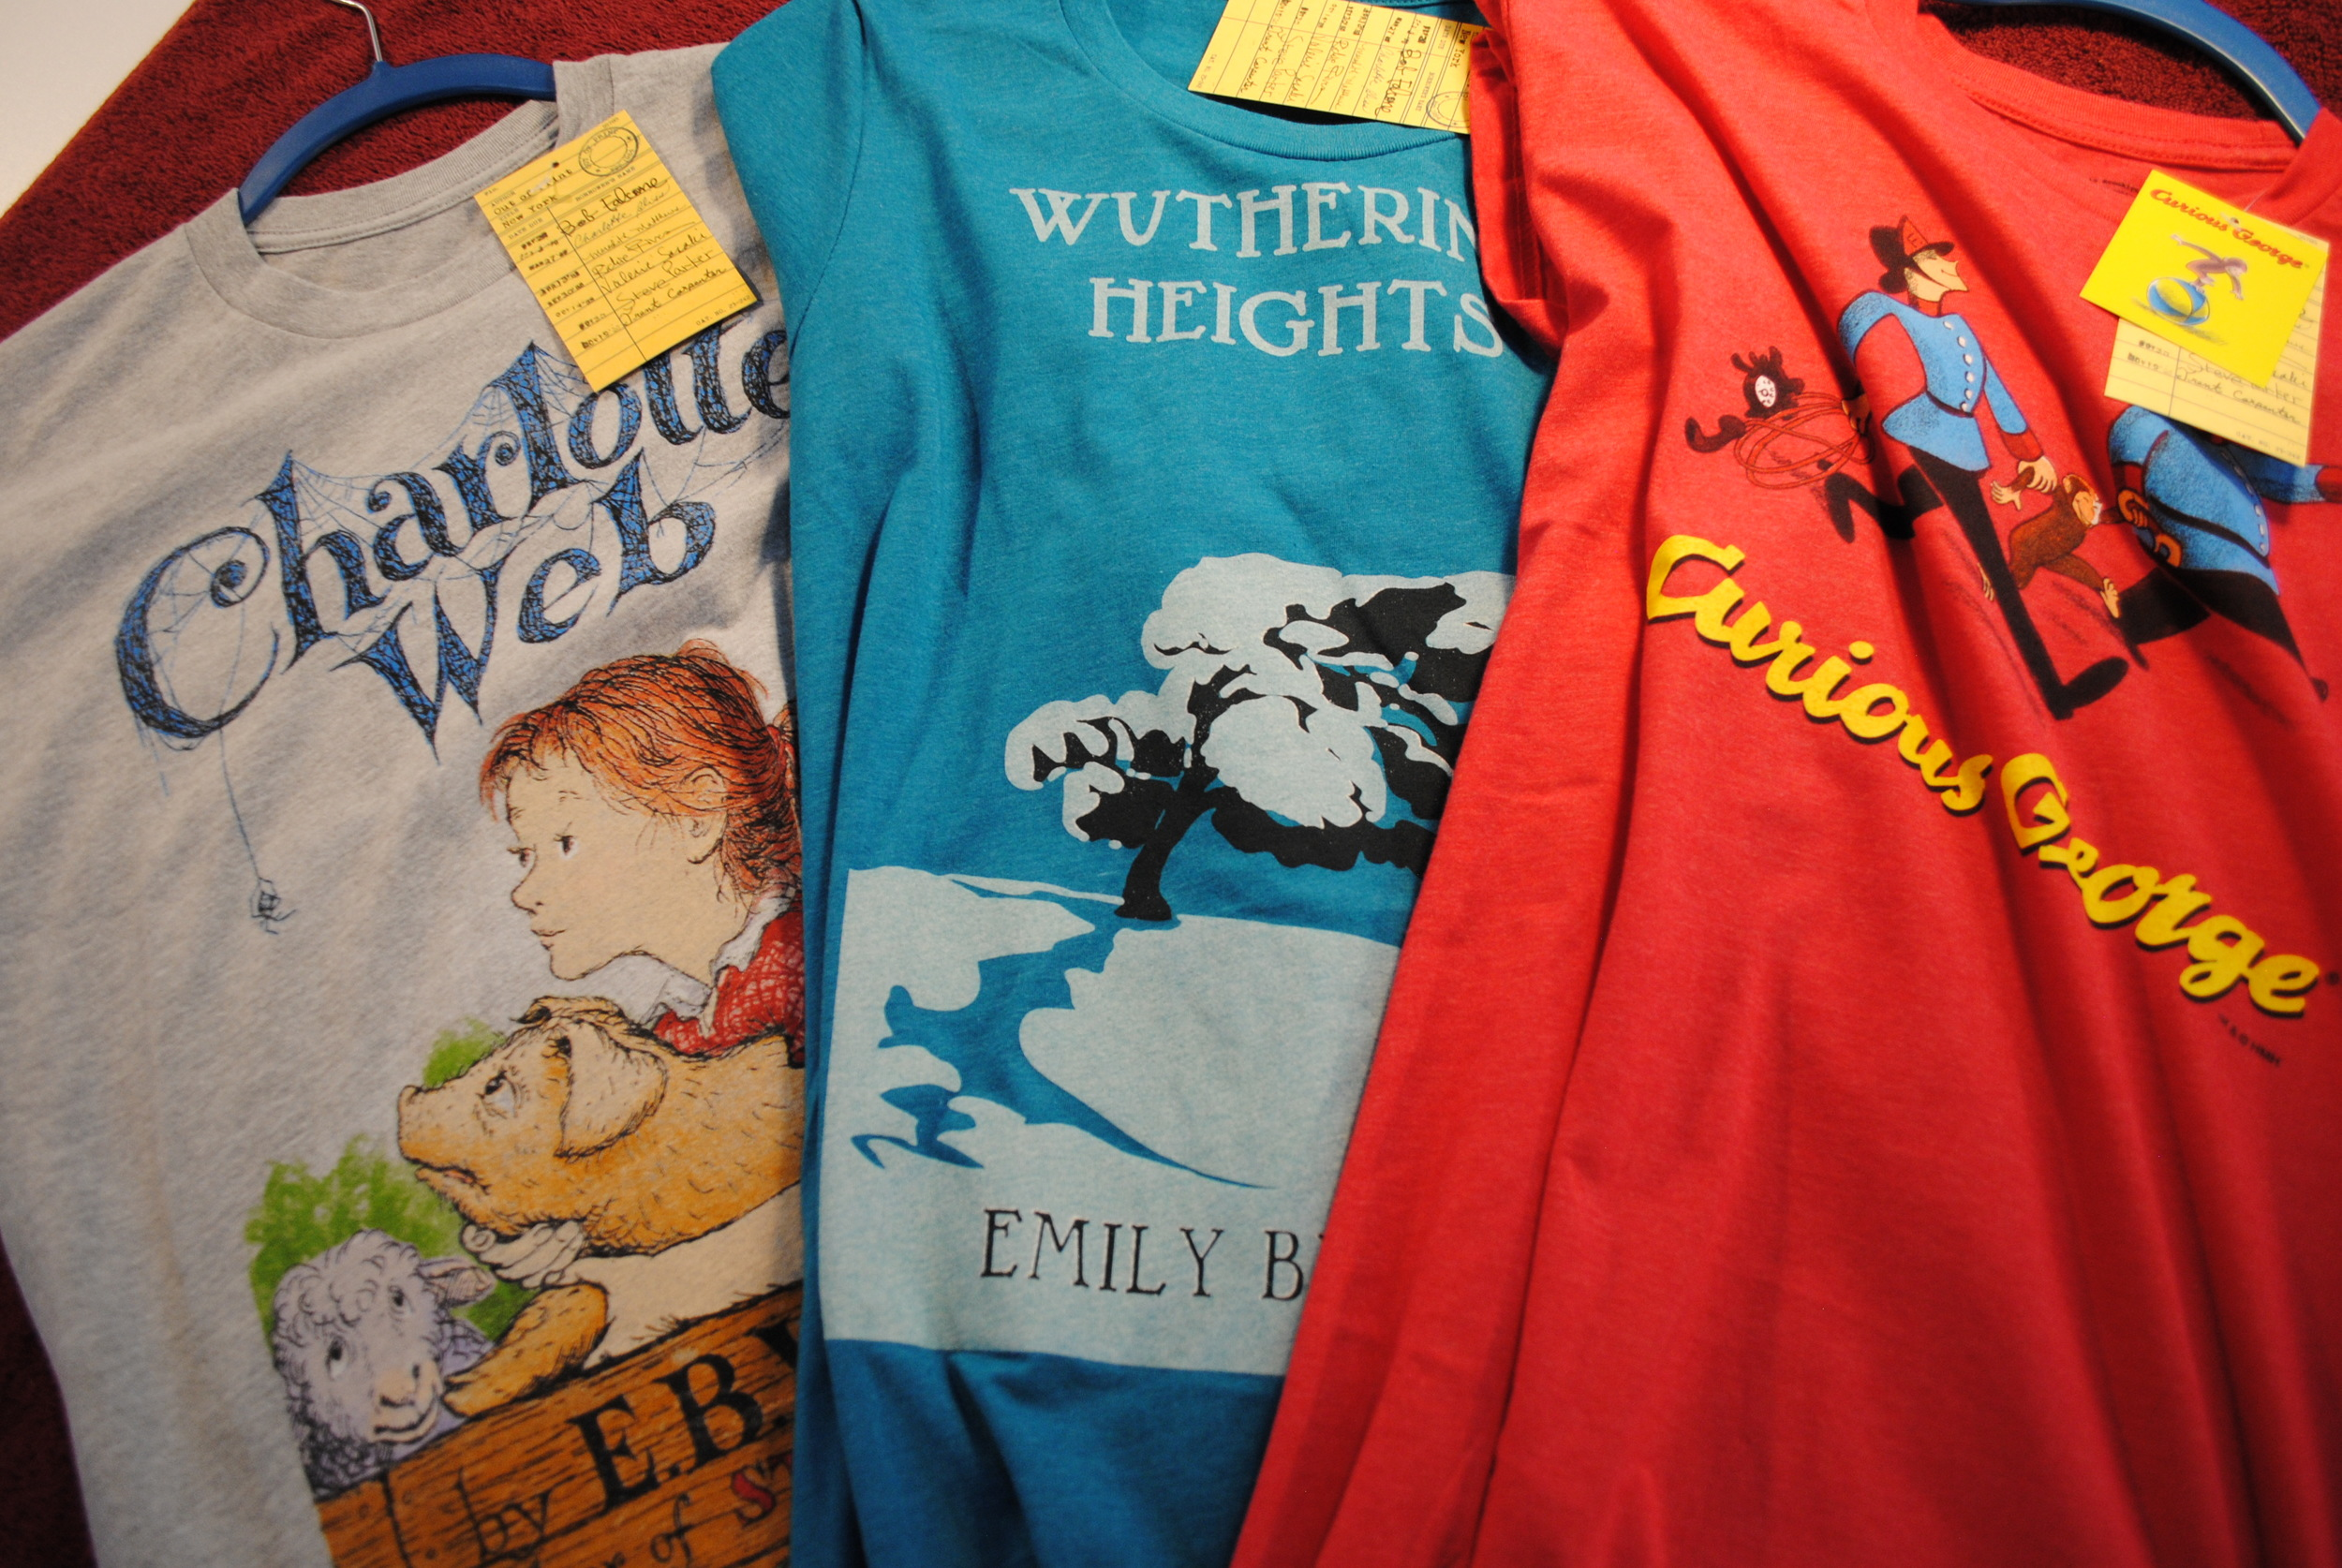 LIterary shirts from The Prints and the Paper in Edmonton on 124 street